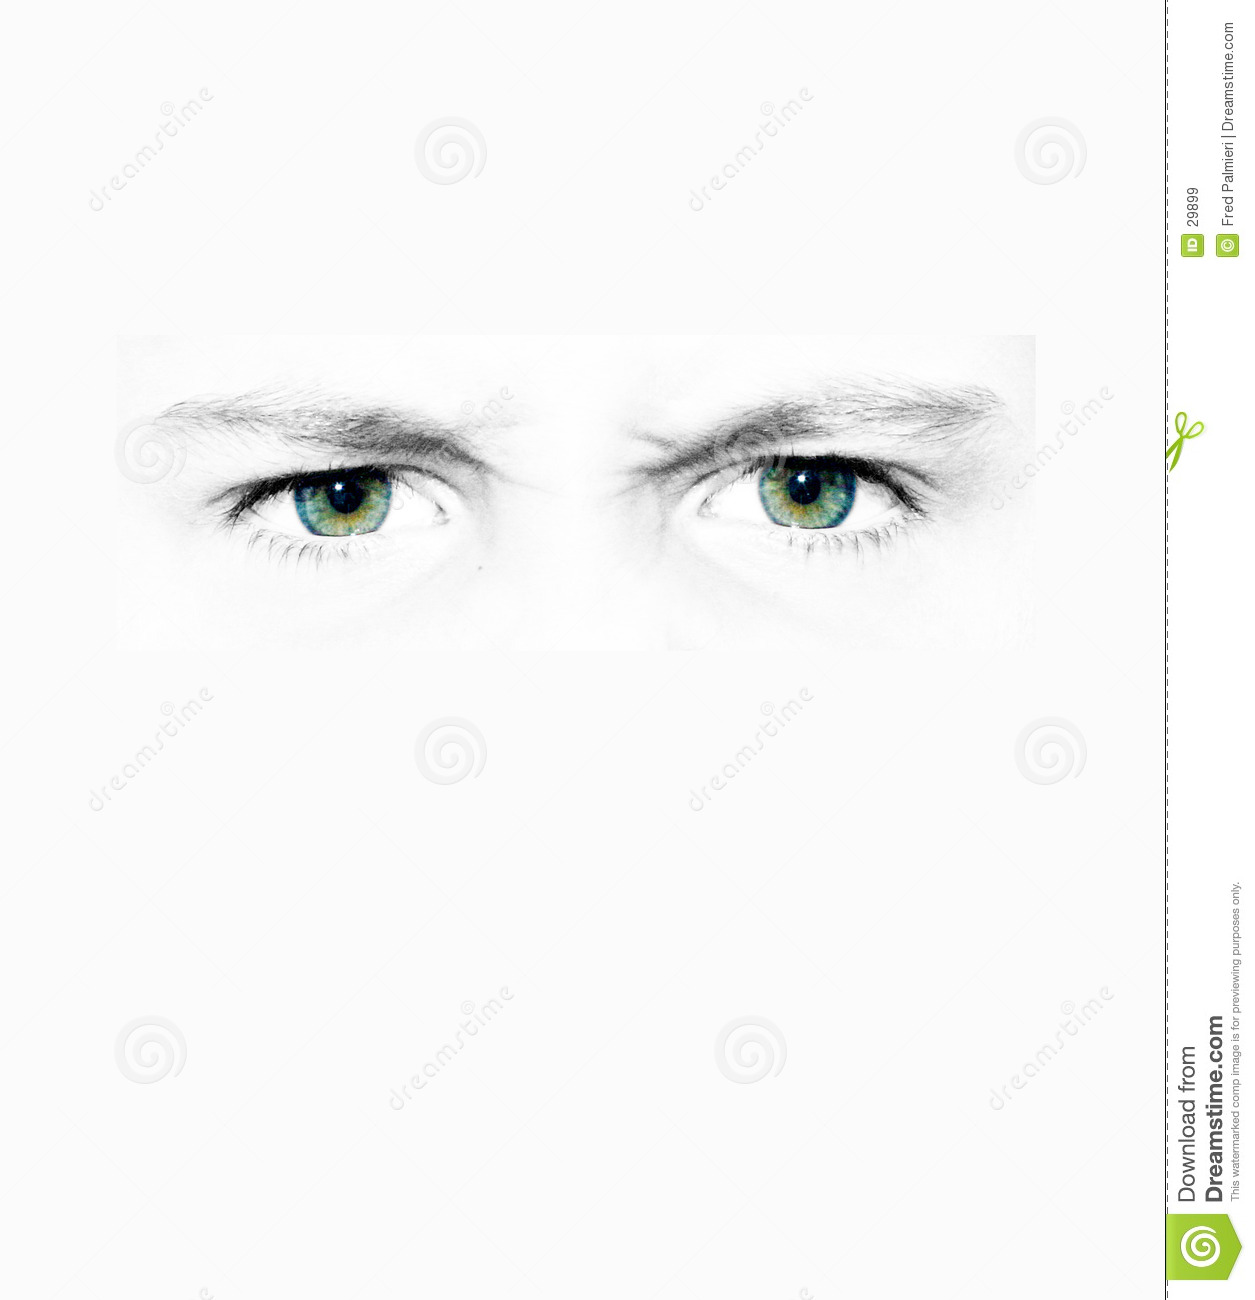 Set of staring eyes on all white background. Only the eyeball itself ...: www.dreamstime.com/royalty-free-stock-images-staring-eyes-image29899